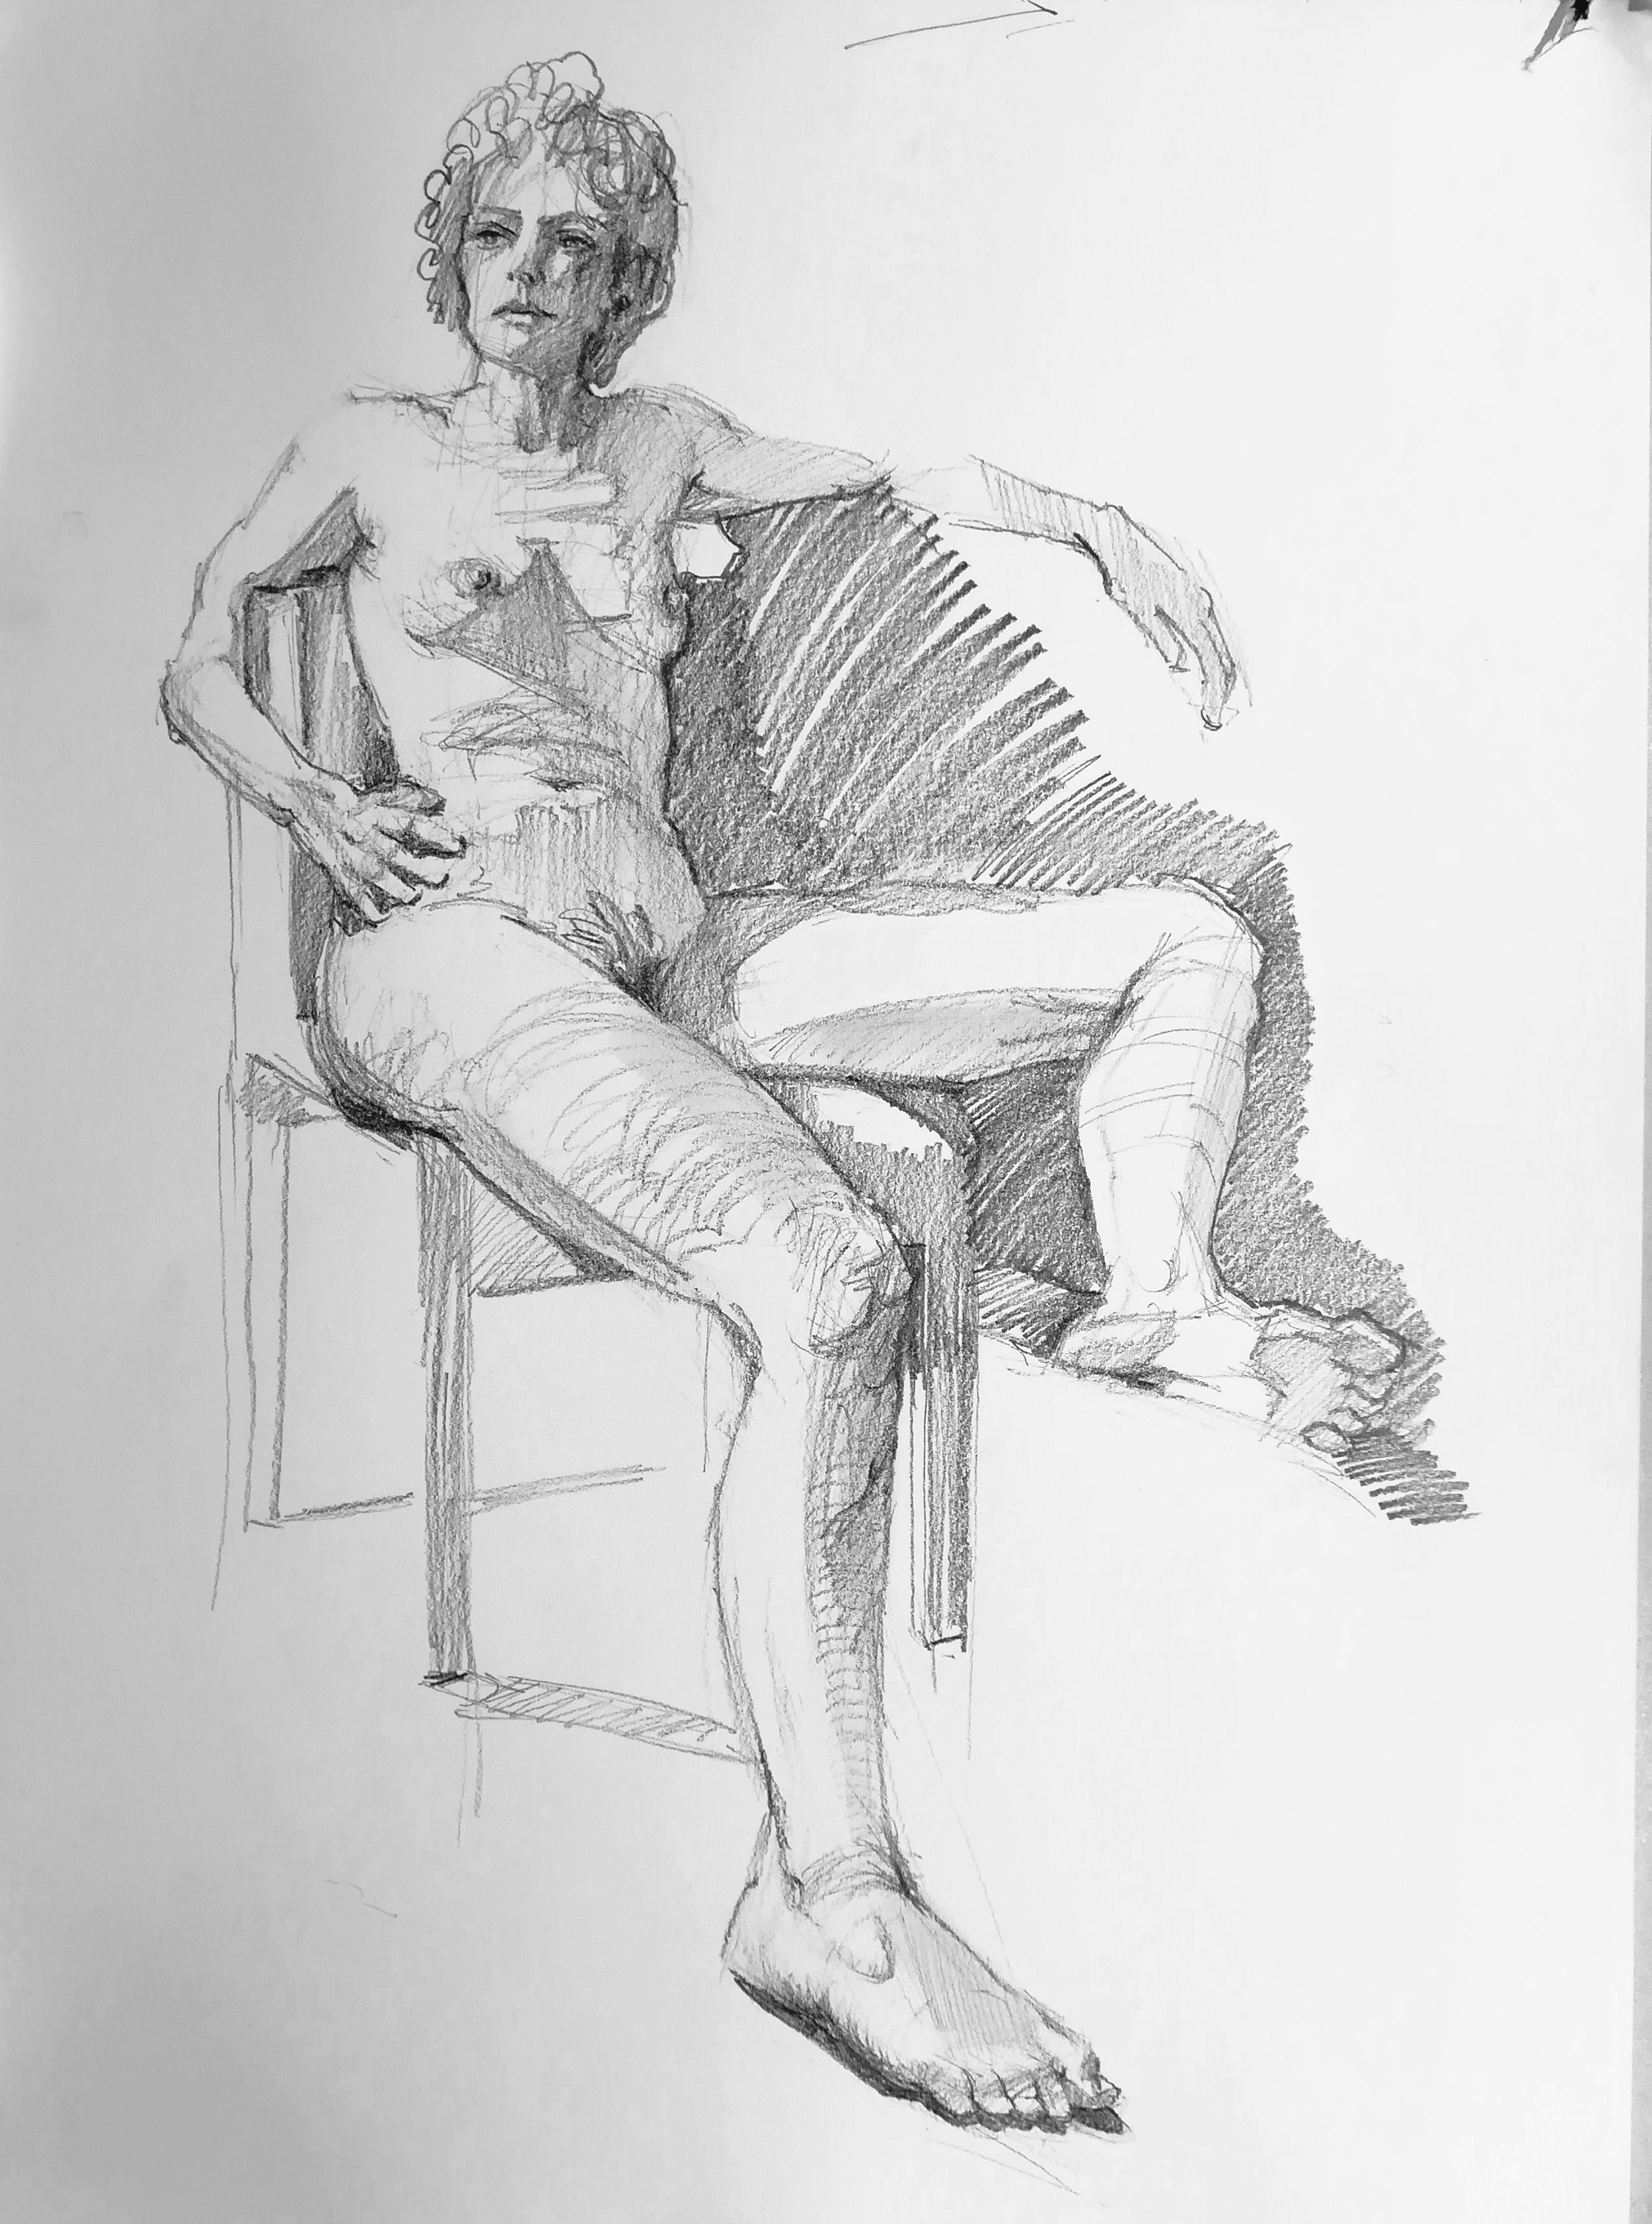 Graphite pencil life drawing